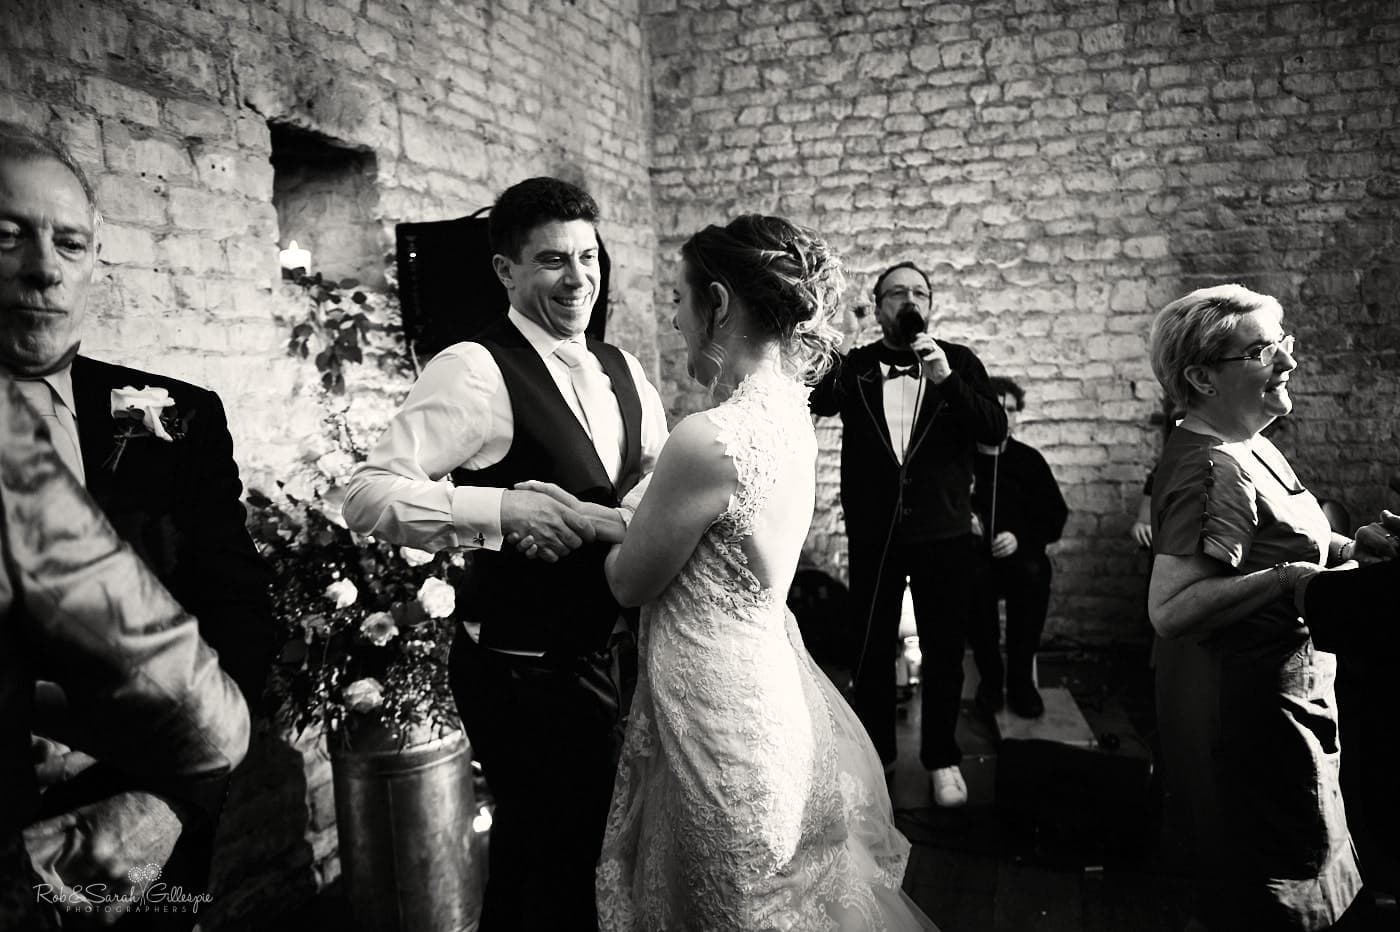 Ceilidh dancing at Lapstone Barn wedding